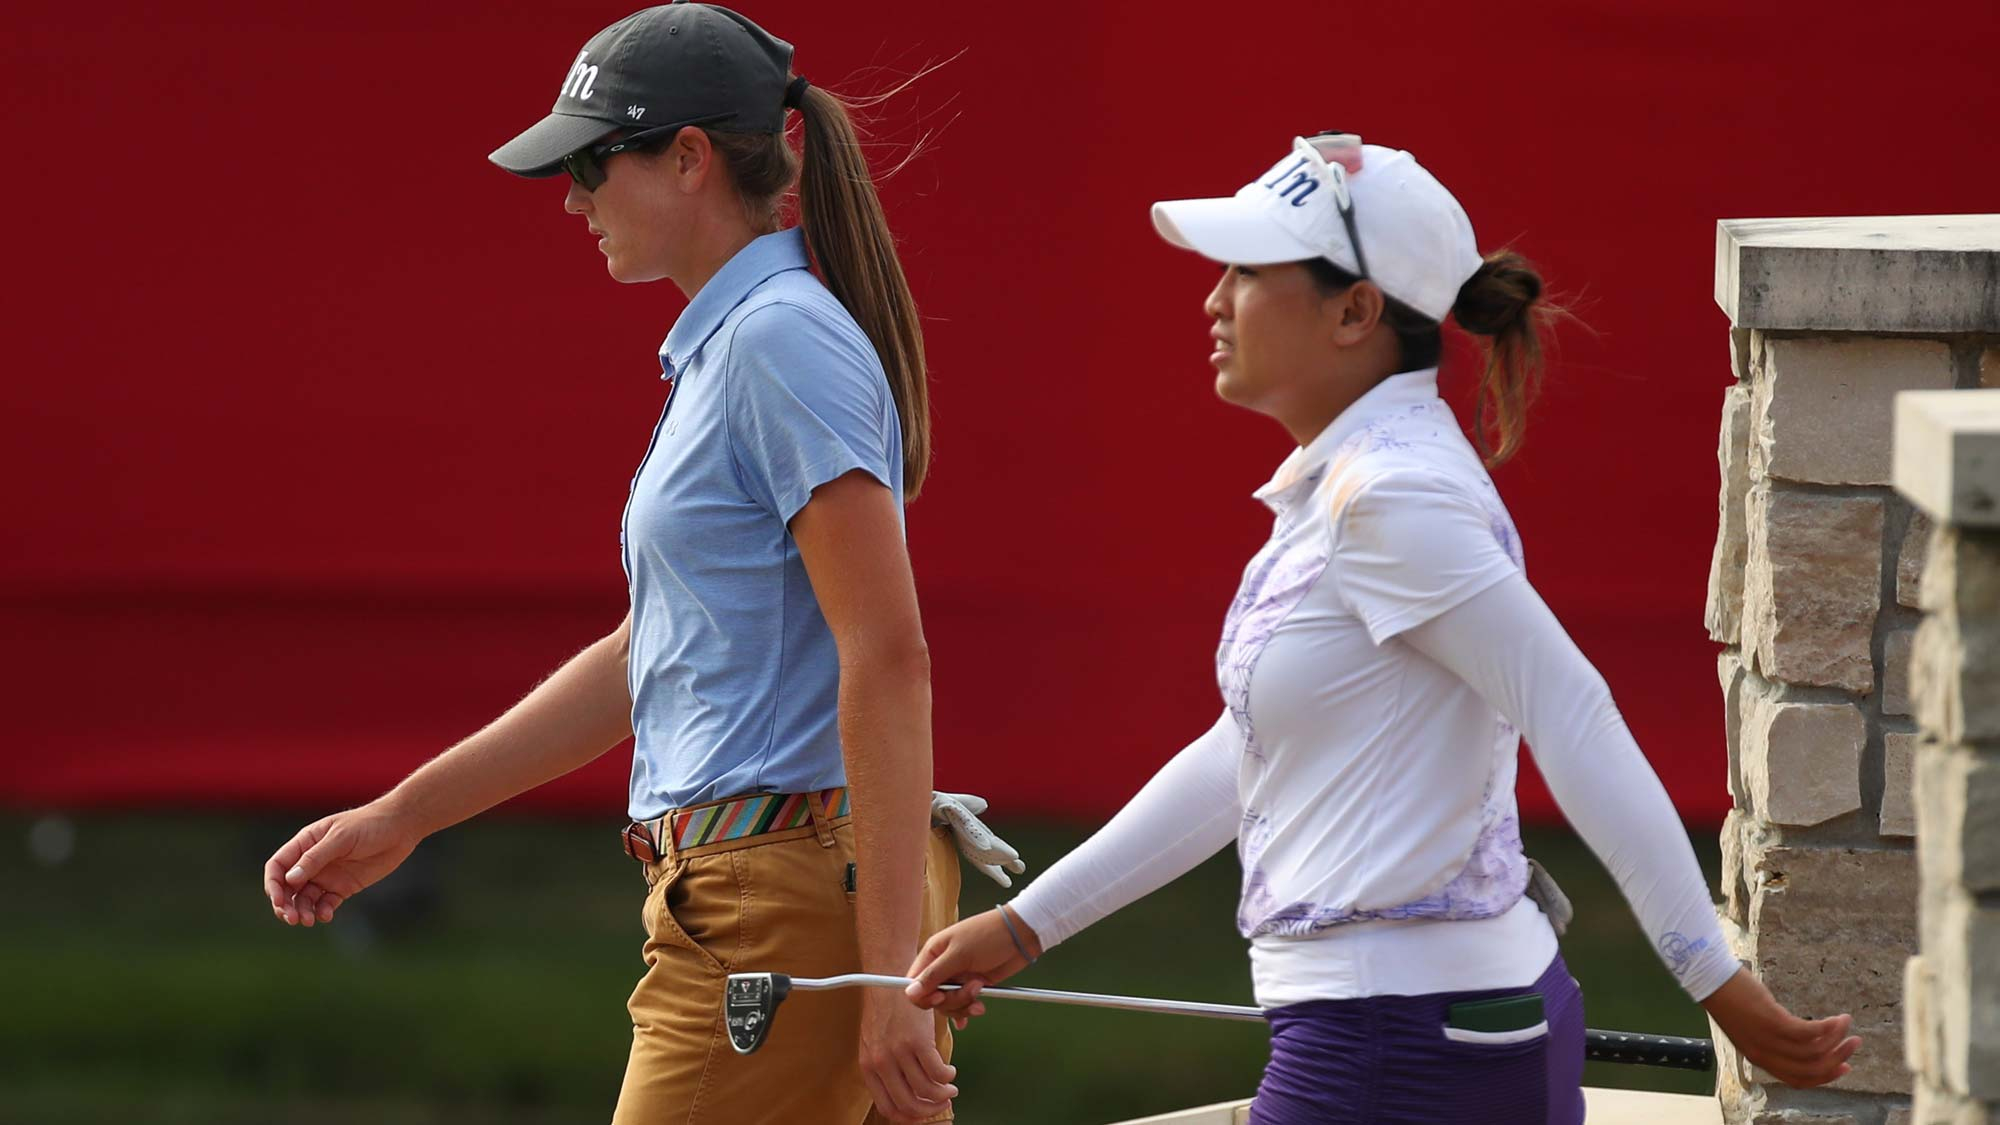 Teammates Jasmine Suwannapura of Thailand (R) and Cydney Clanton of the United States walk to the 18th green during round three of the Dow Great Lakes Bay Invitational